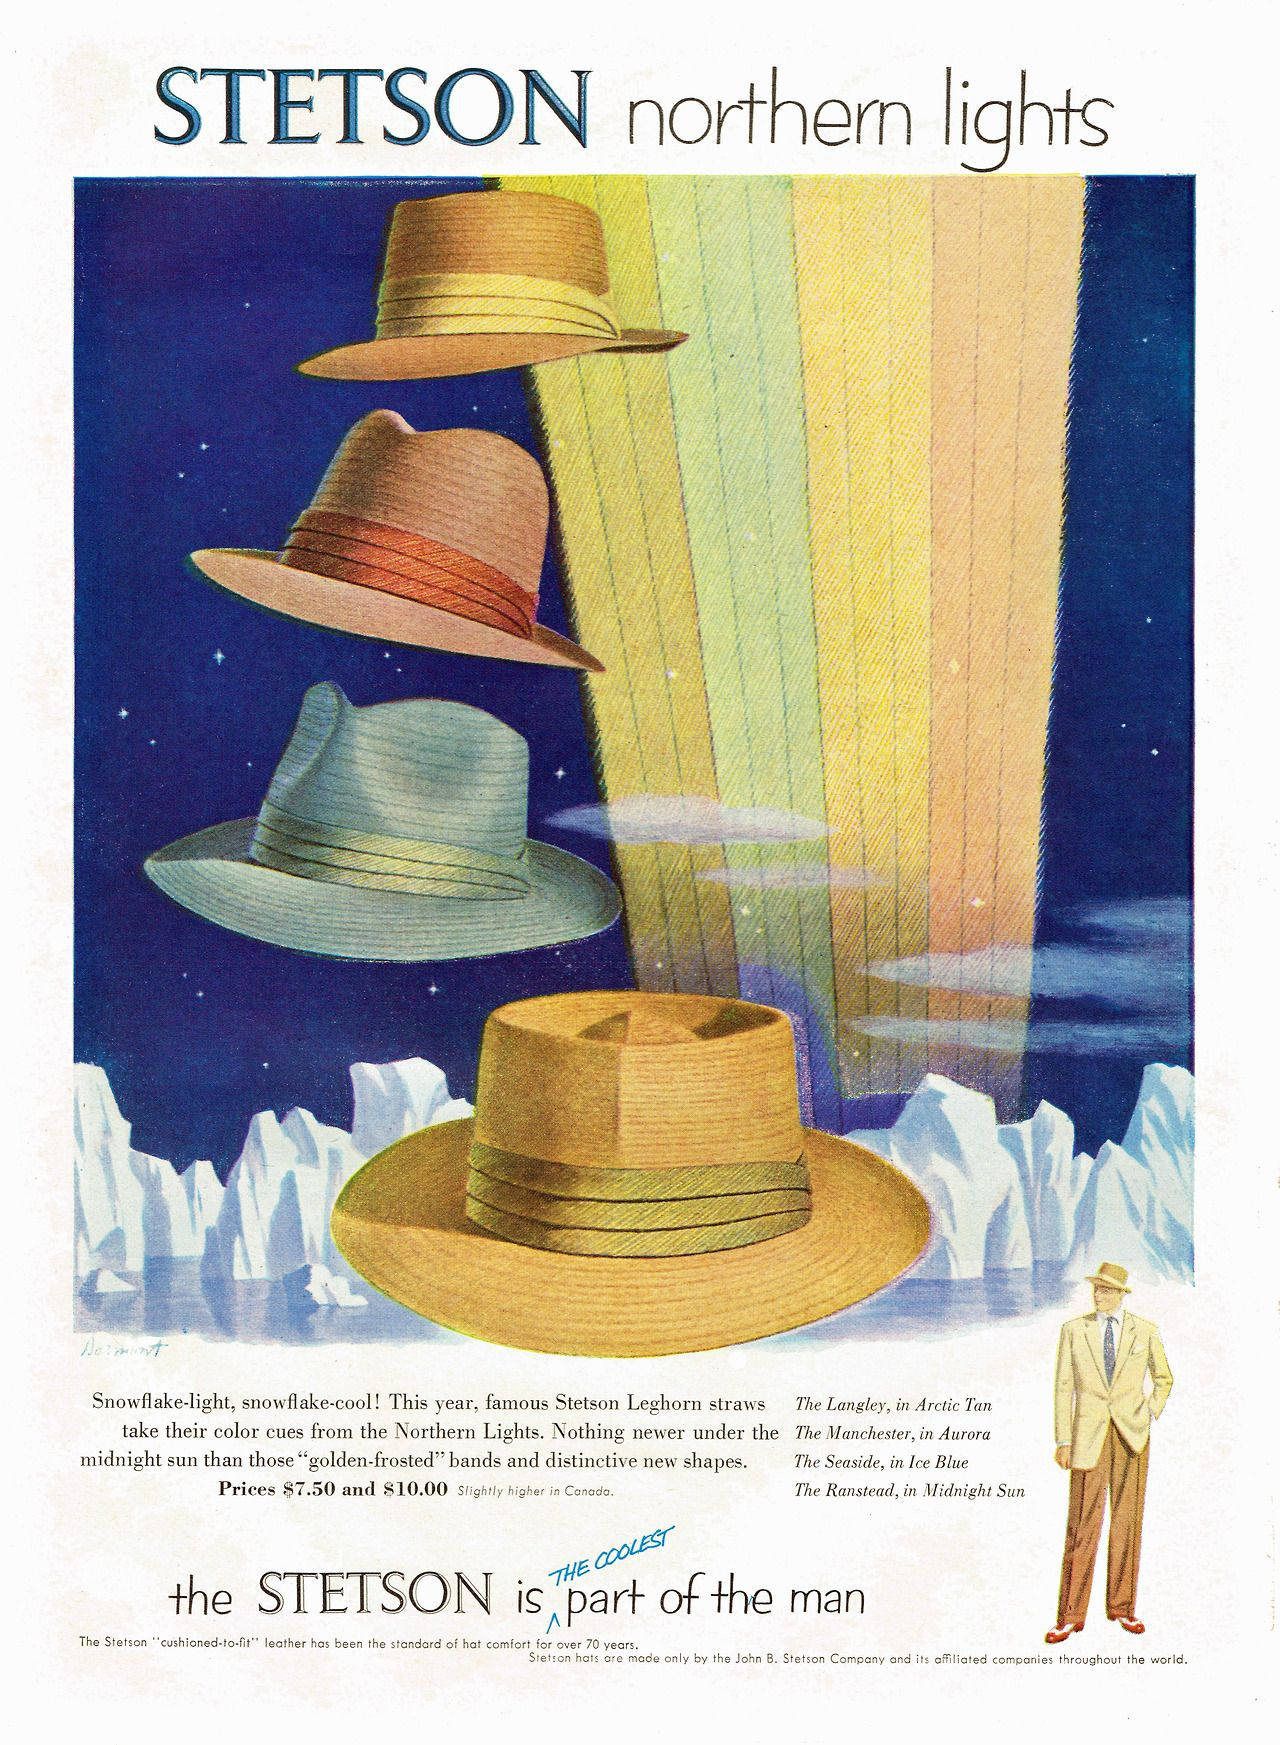 Dtxmcclain Stetson Northern Lights 1953 Scanned From Time Magazine May 18 1953 Issue Stetson Hat Stetson Retro Advertisements